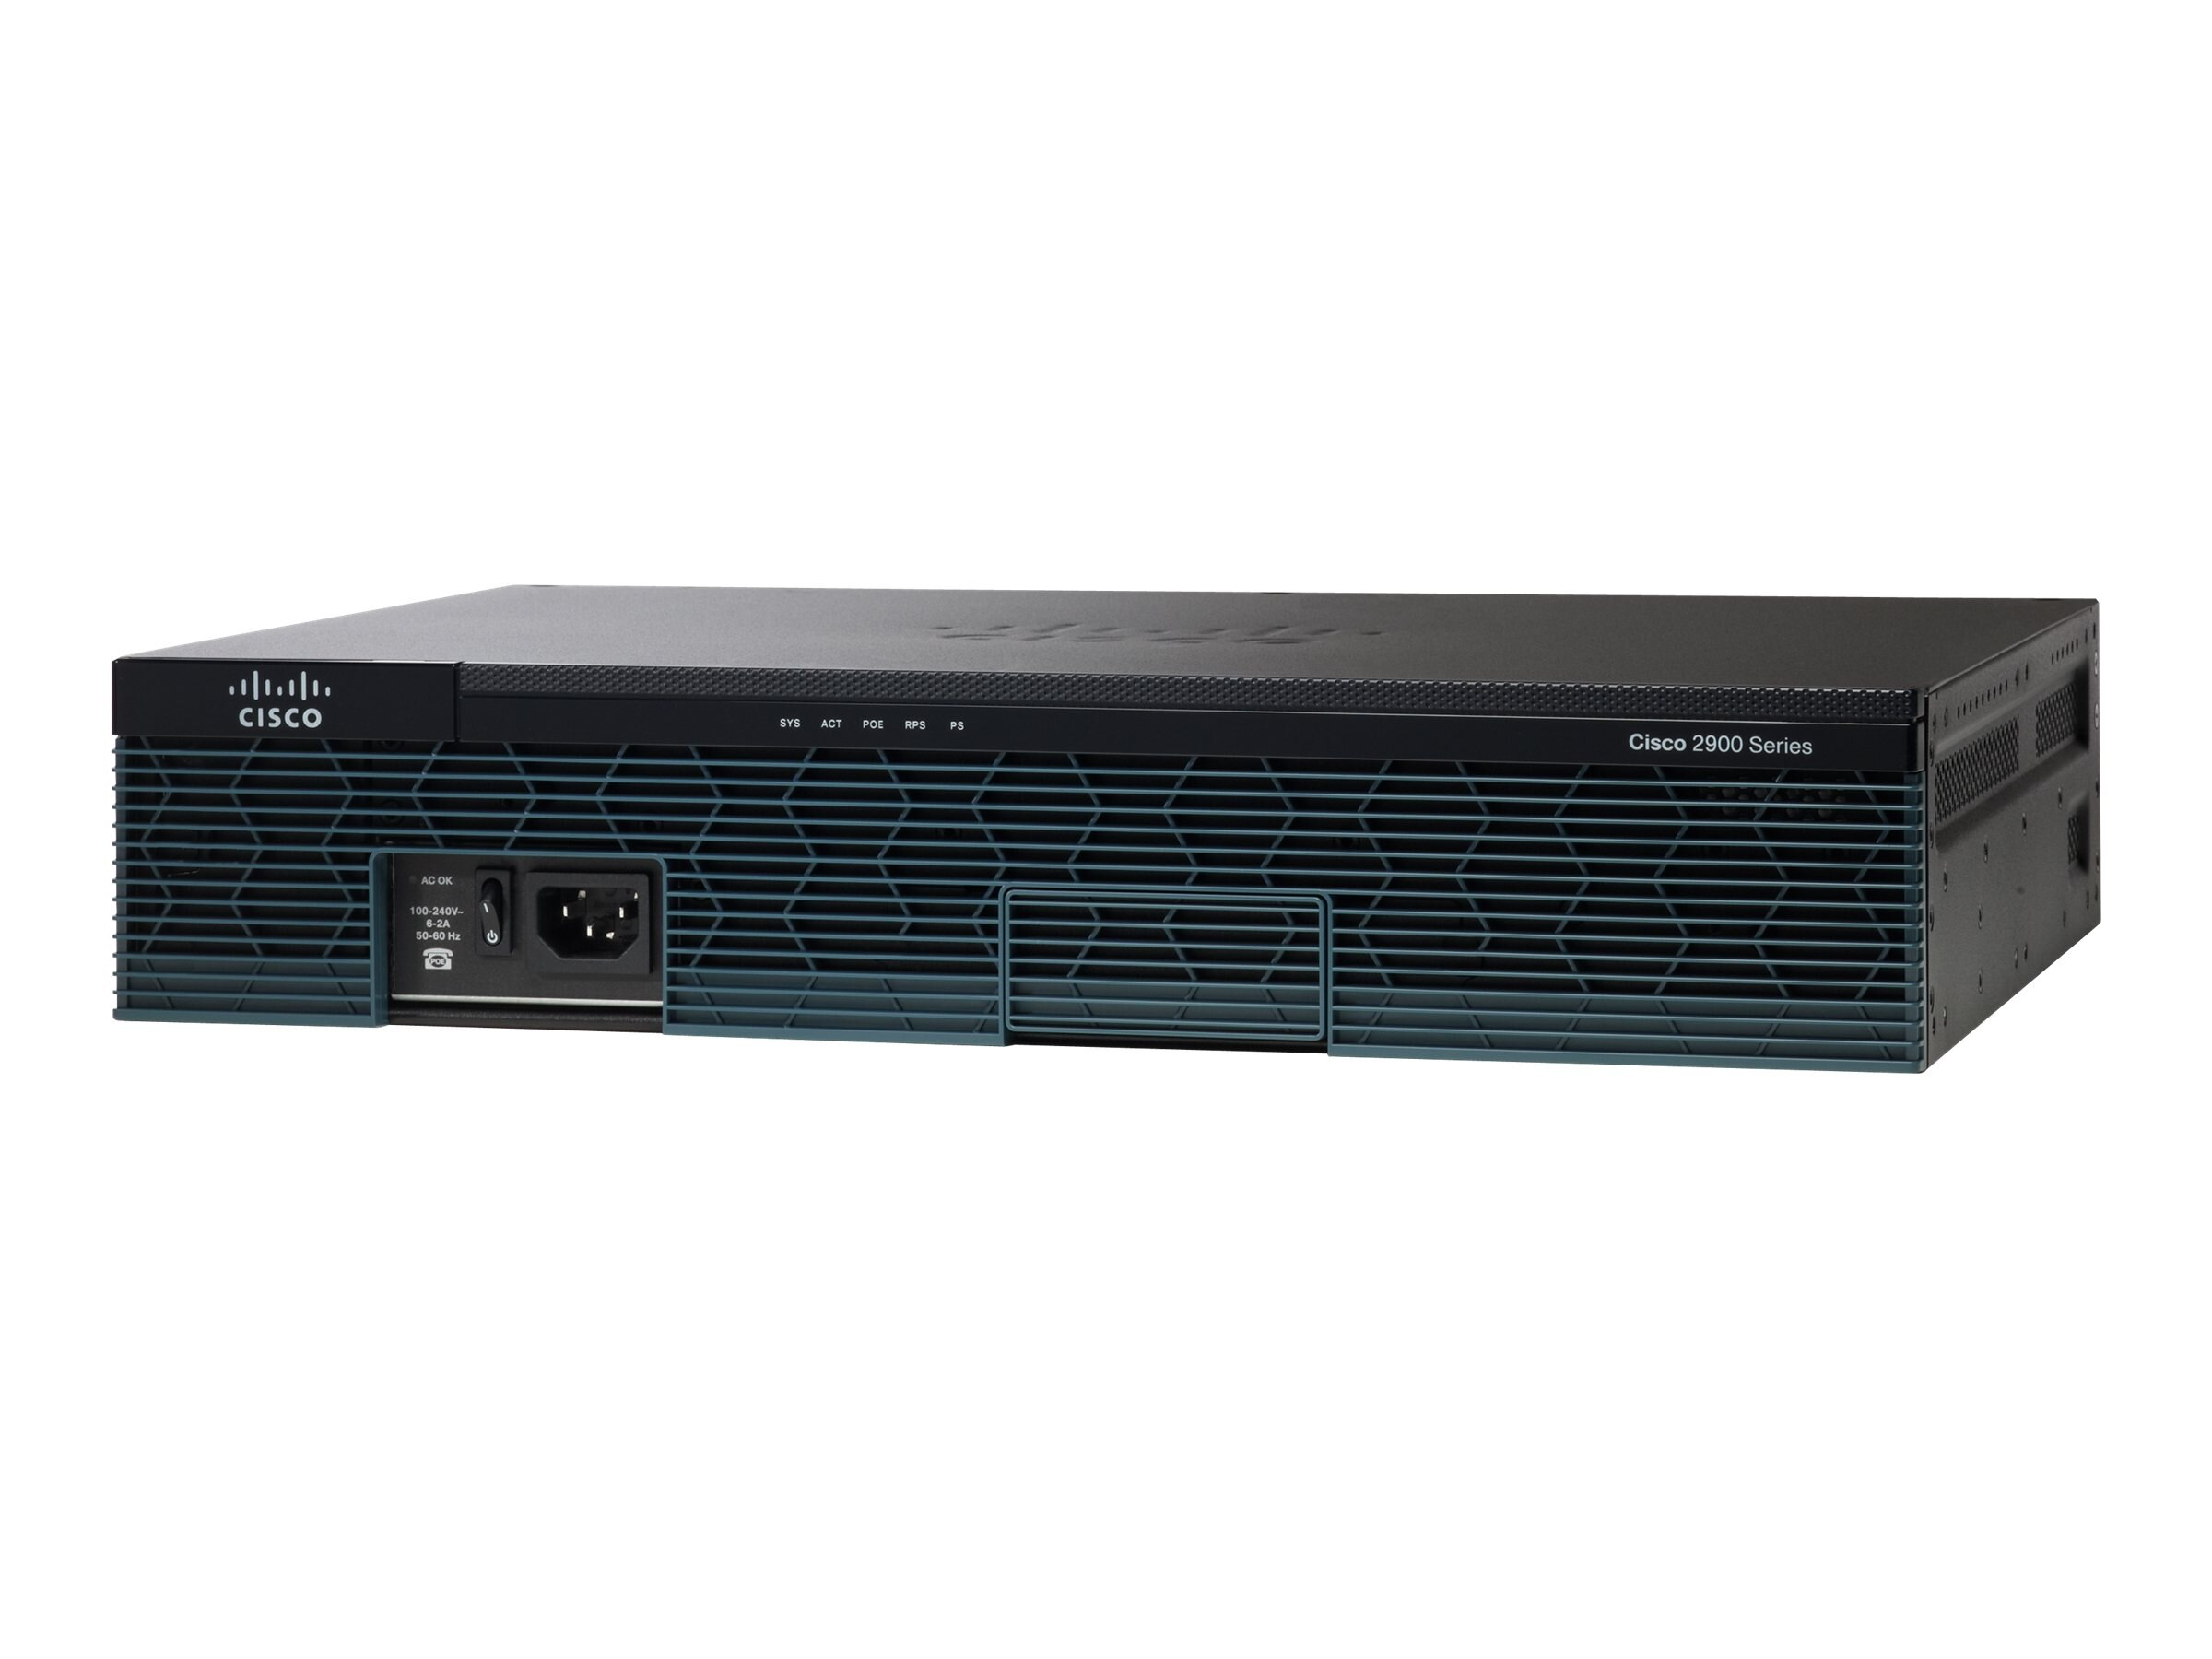 Cisco CISCO2911/K9 Image 1